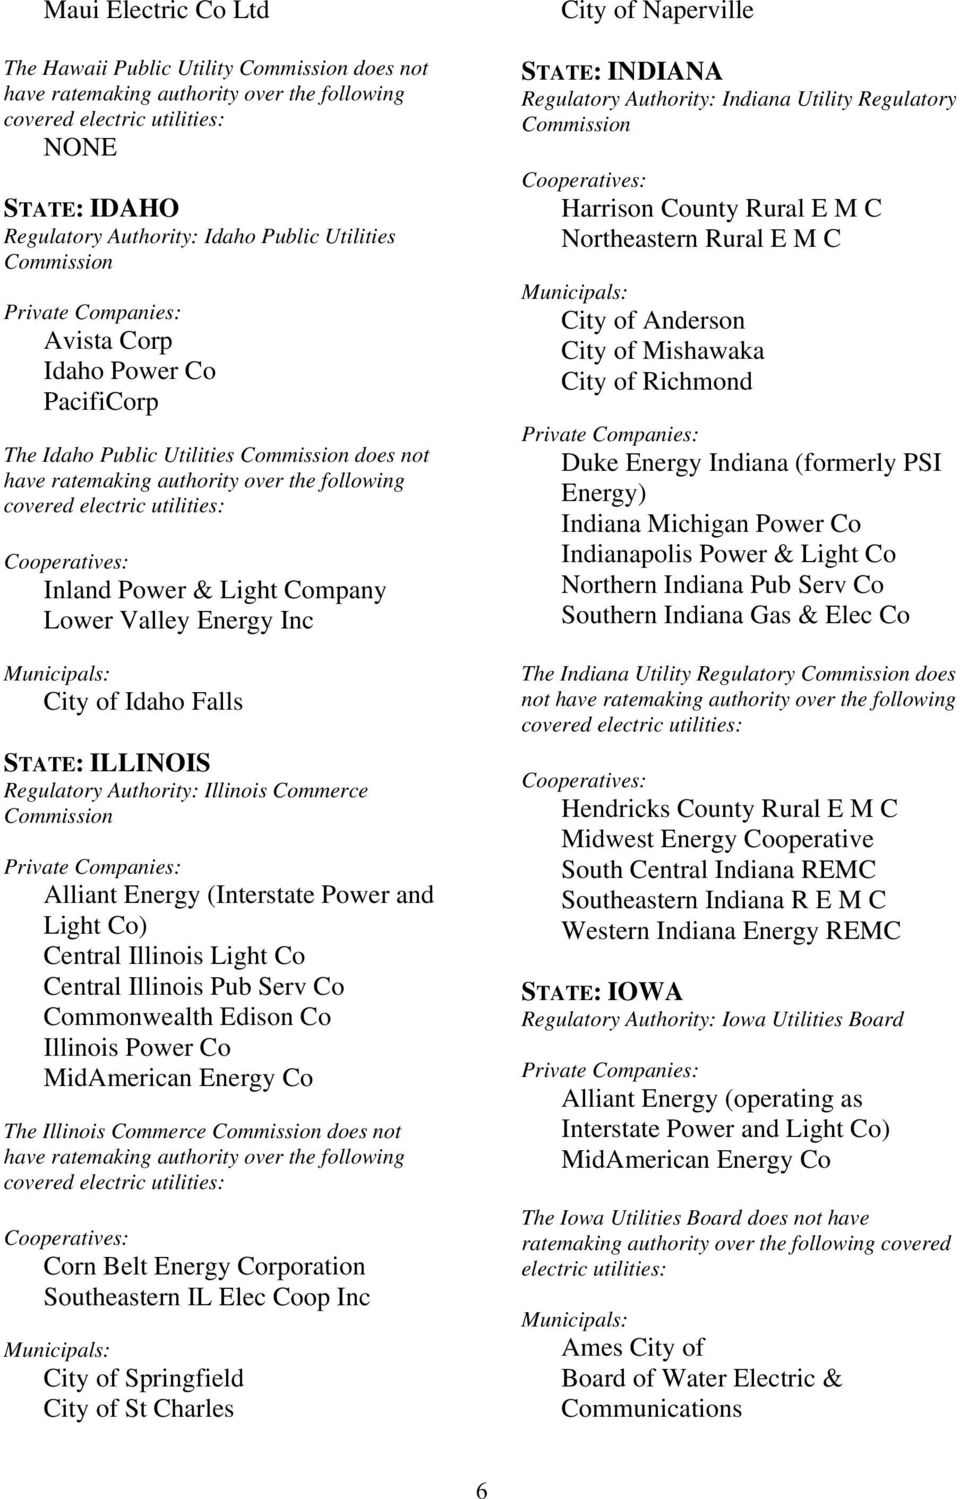 Central Illinois Pub Serv Co Commonwealth Edison Co Illinois Power Co MidAmerican Energy Co The Illinois Commerce does not Corn Belt Energy Corporation Southeastern IL Elec Coop Inc City of